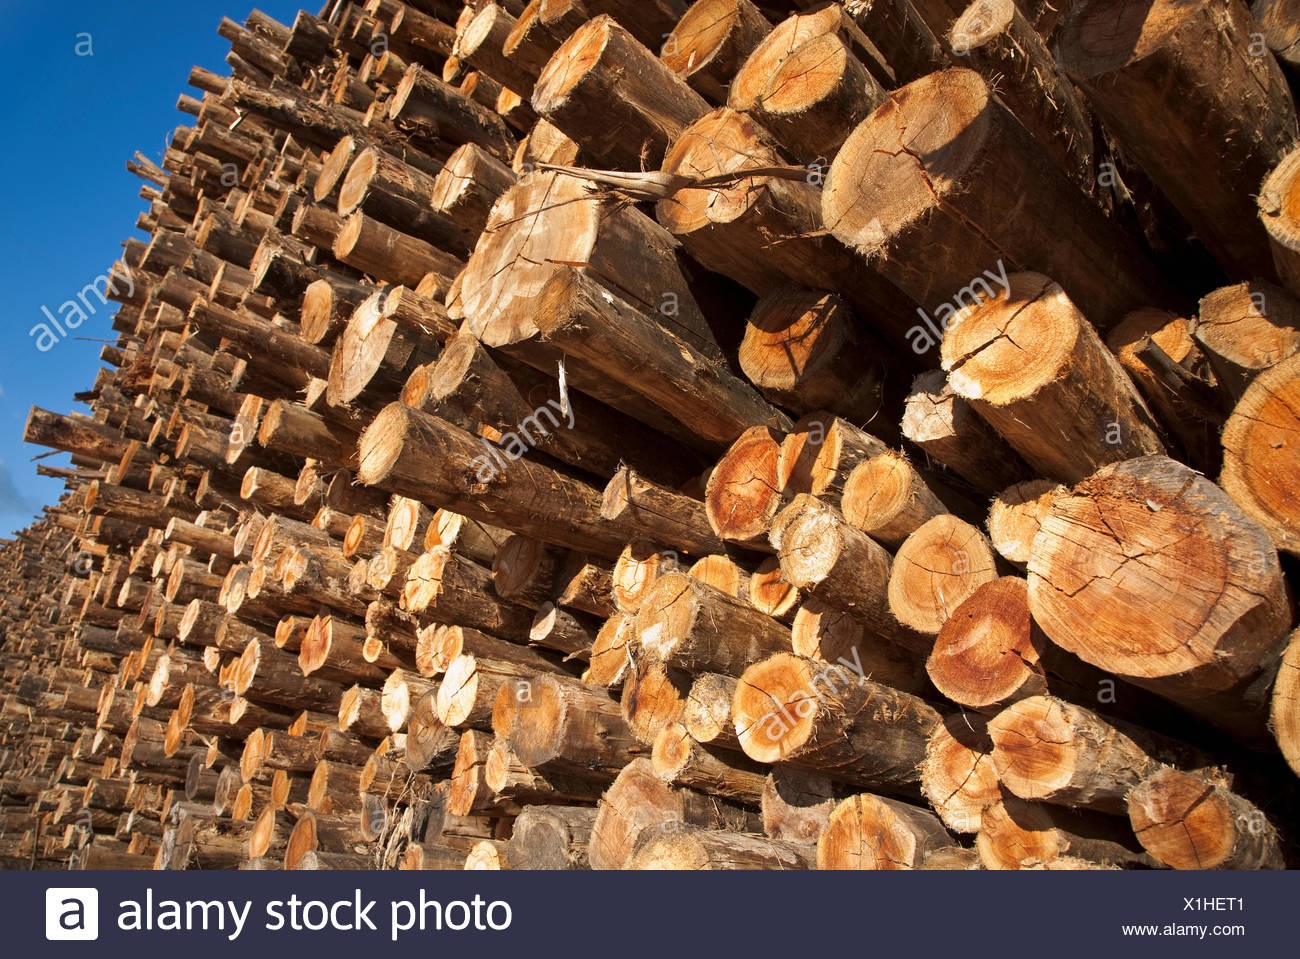 Agriculture - Harvested Eucalyptus logs at a pulp mill, exported for the paper industry / Uruguay. - Stock Image